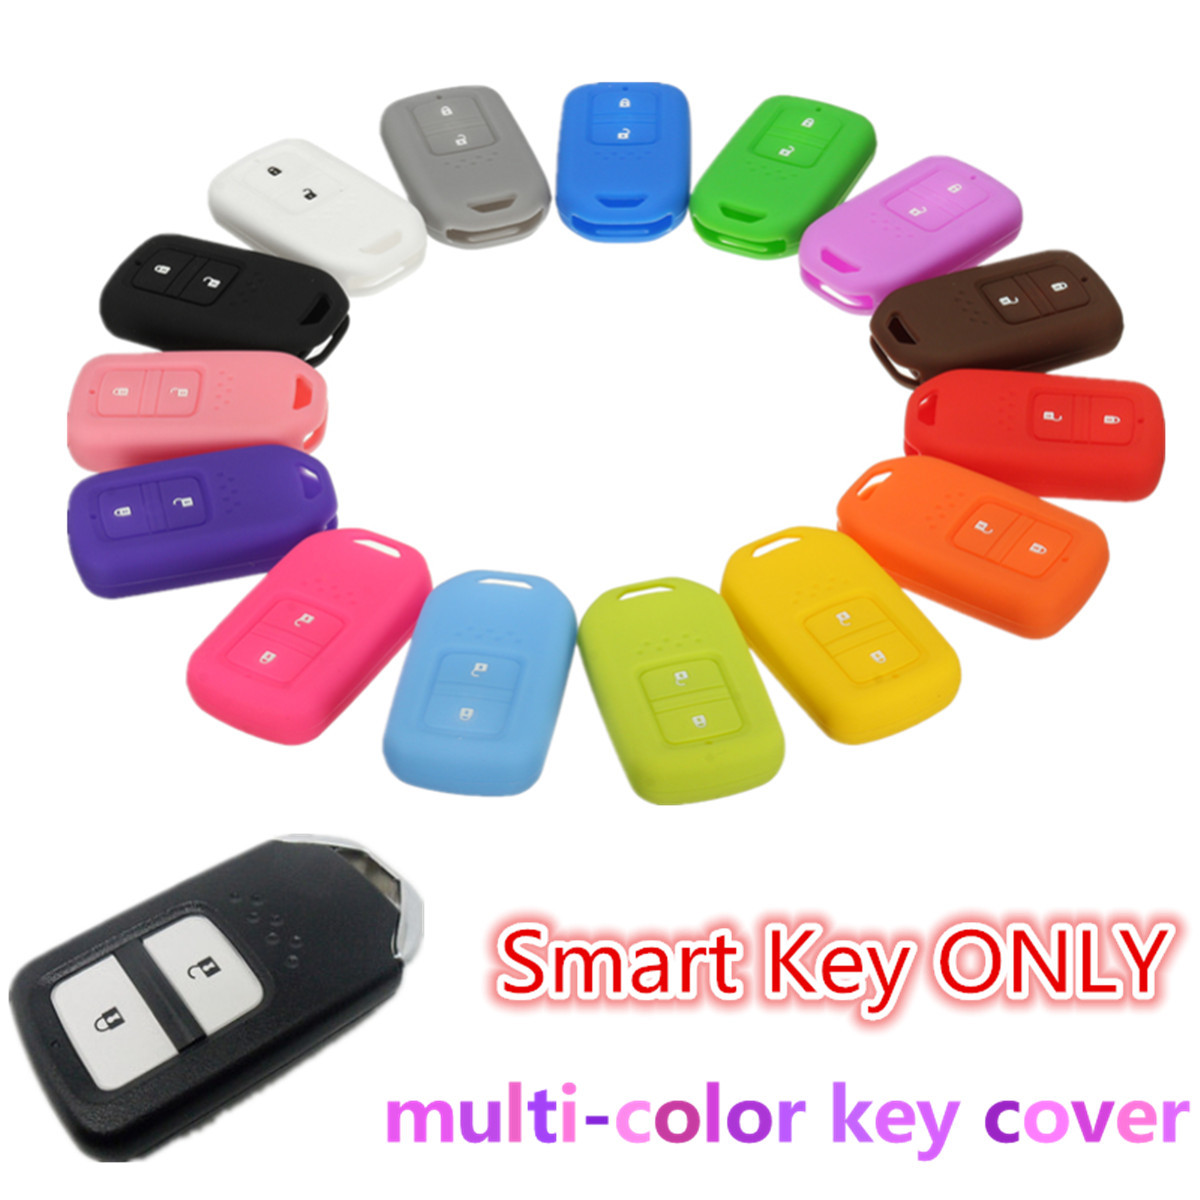 Silicone 2 Button Smart <font><b>Keyless</b></font> <font><b>Remote</b></font> Key Case Fob Cover Holder For <font><b>Honda</b></font> /VEZEL /HR-V /JAZZ /CIVIC /ACCORD /ODYSSEY image